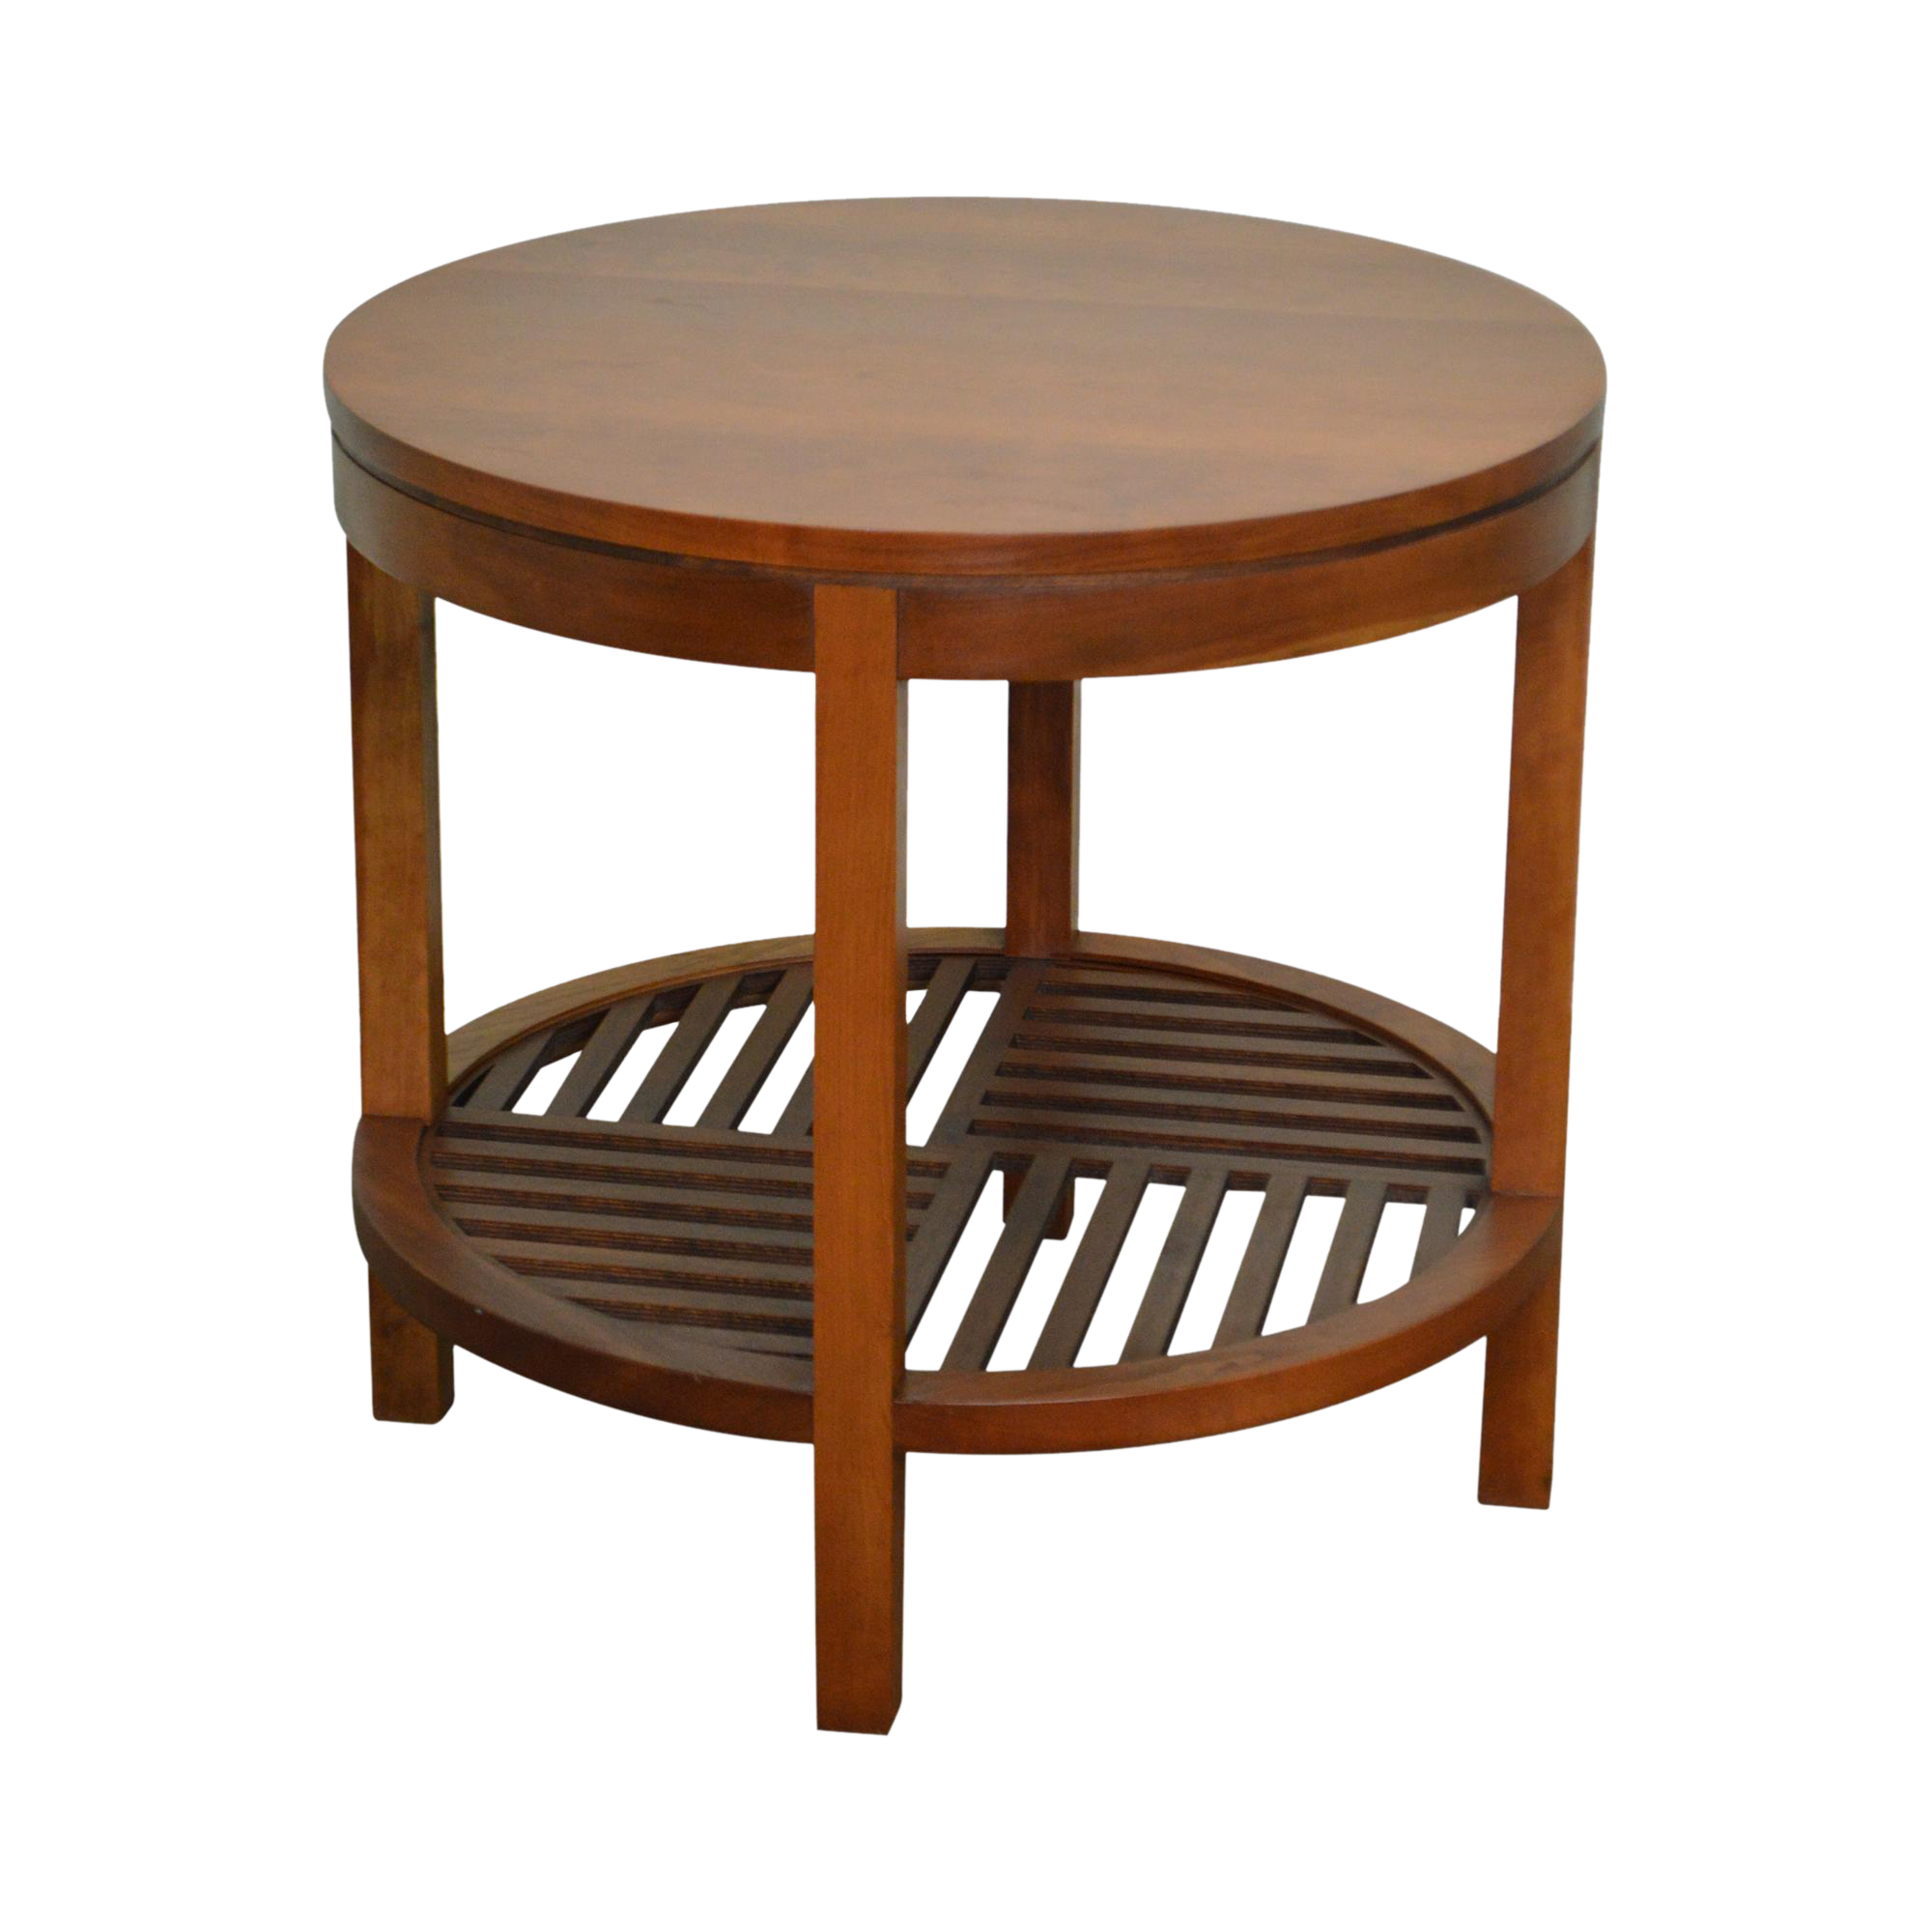 Stickley metropolitan collection cherry walnut round lamp table stickley metropolitan collection cherry walnut round lamp table chairish geotapseo Image collections